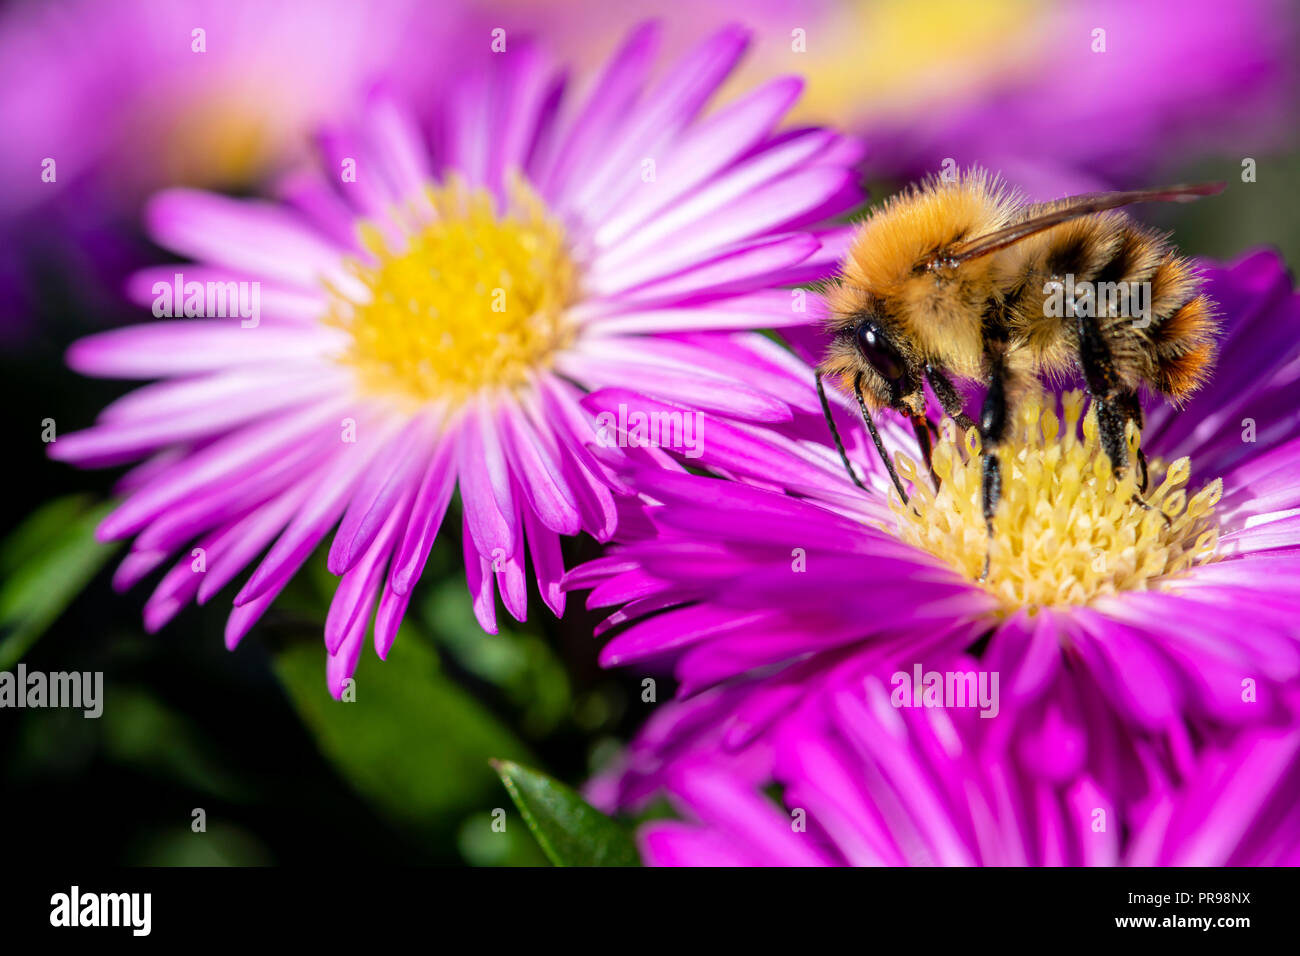 pink-aster-flowers-attracting-bees-to-feed-uk-common-carder-bee-bombus-pascuorum-PR98NX.jpg